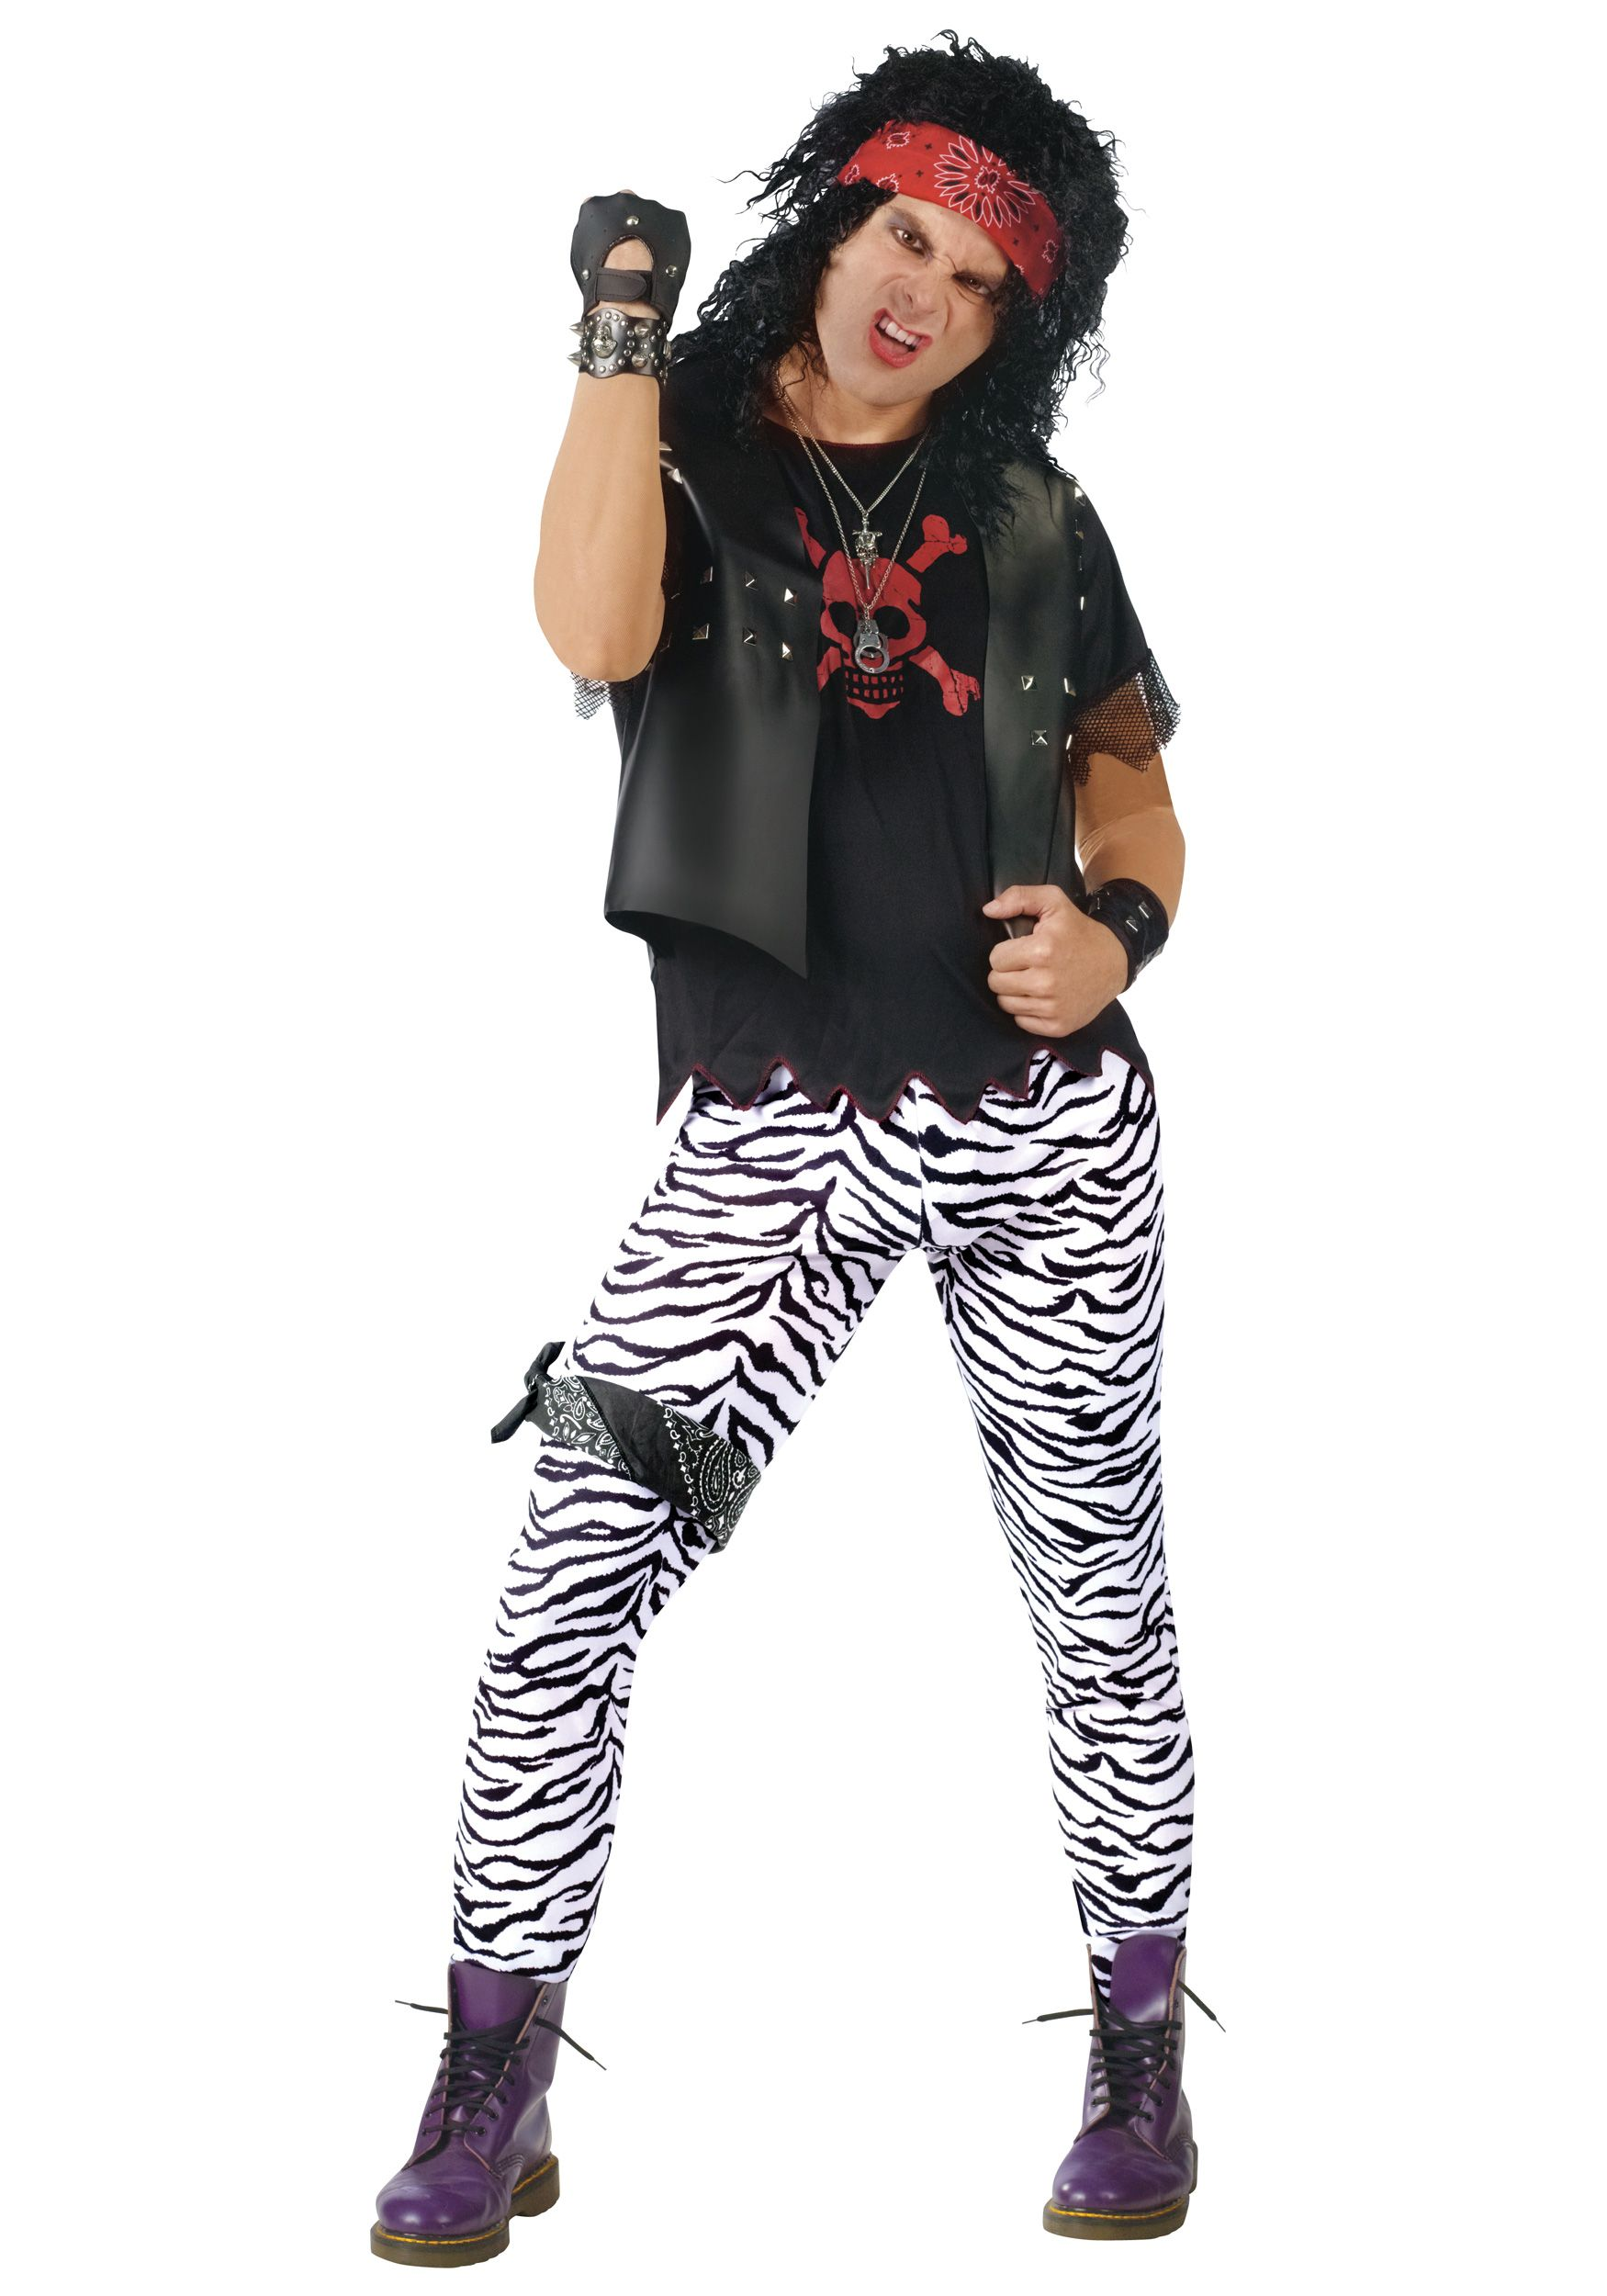 check out this fantastic pair of glam rock lycra trouserssand create your own hair band rock god look from our costume accessories range - 80s Rocker Halloween Costume